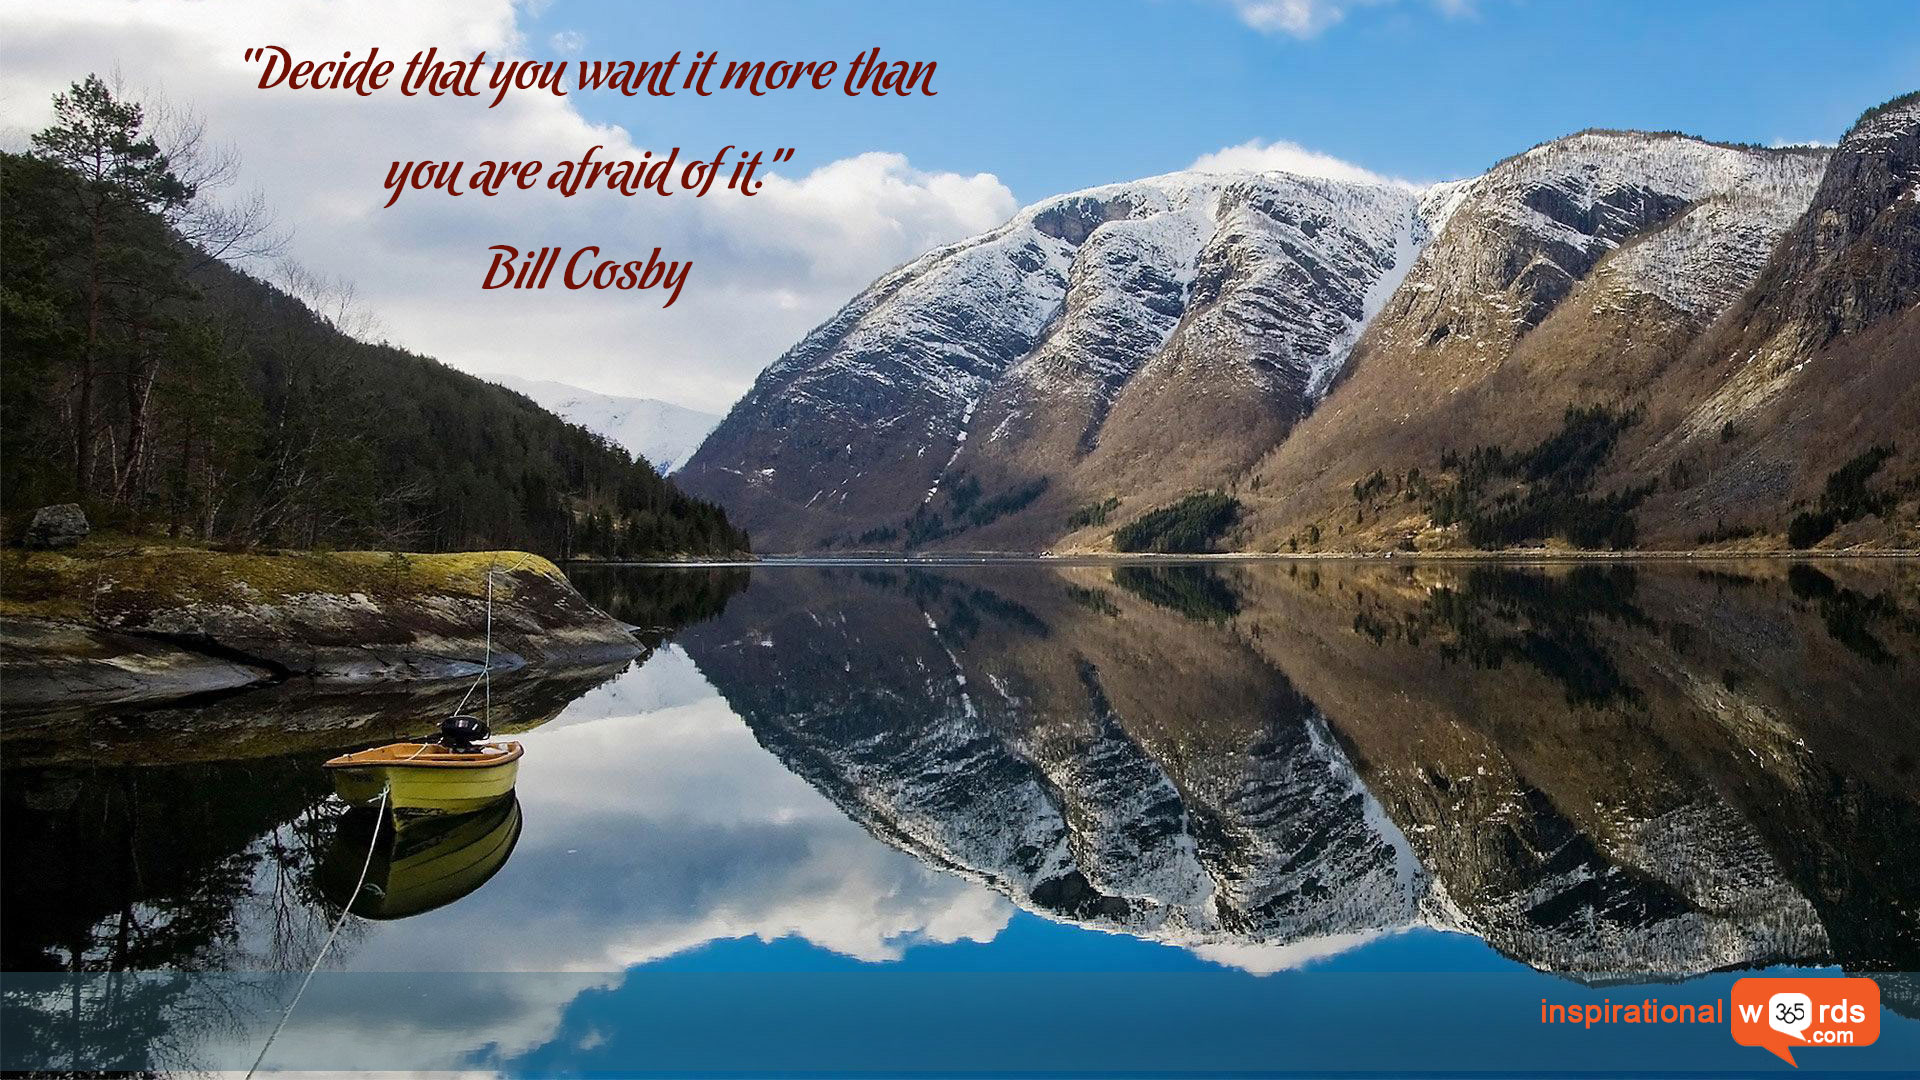 Inspirational Wallpaper Quote by Bill Cosby